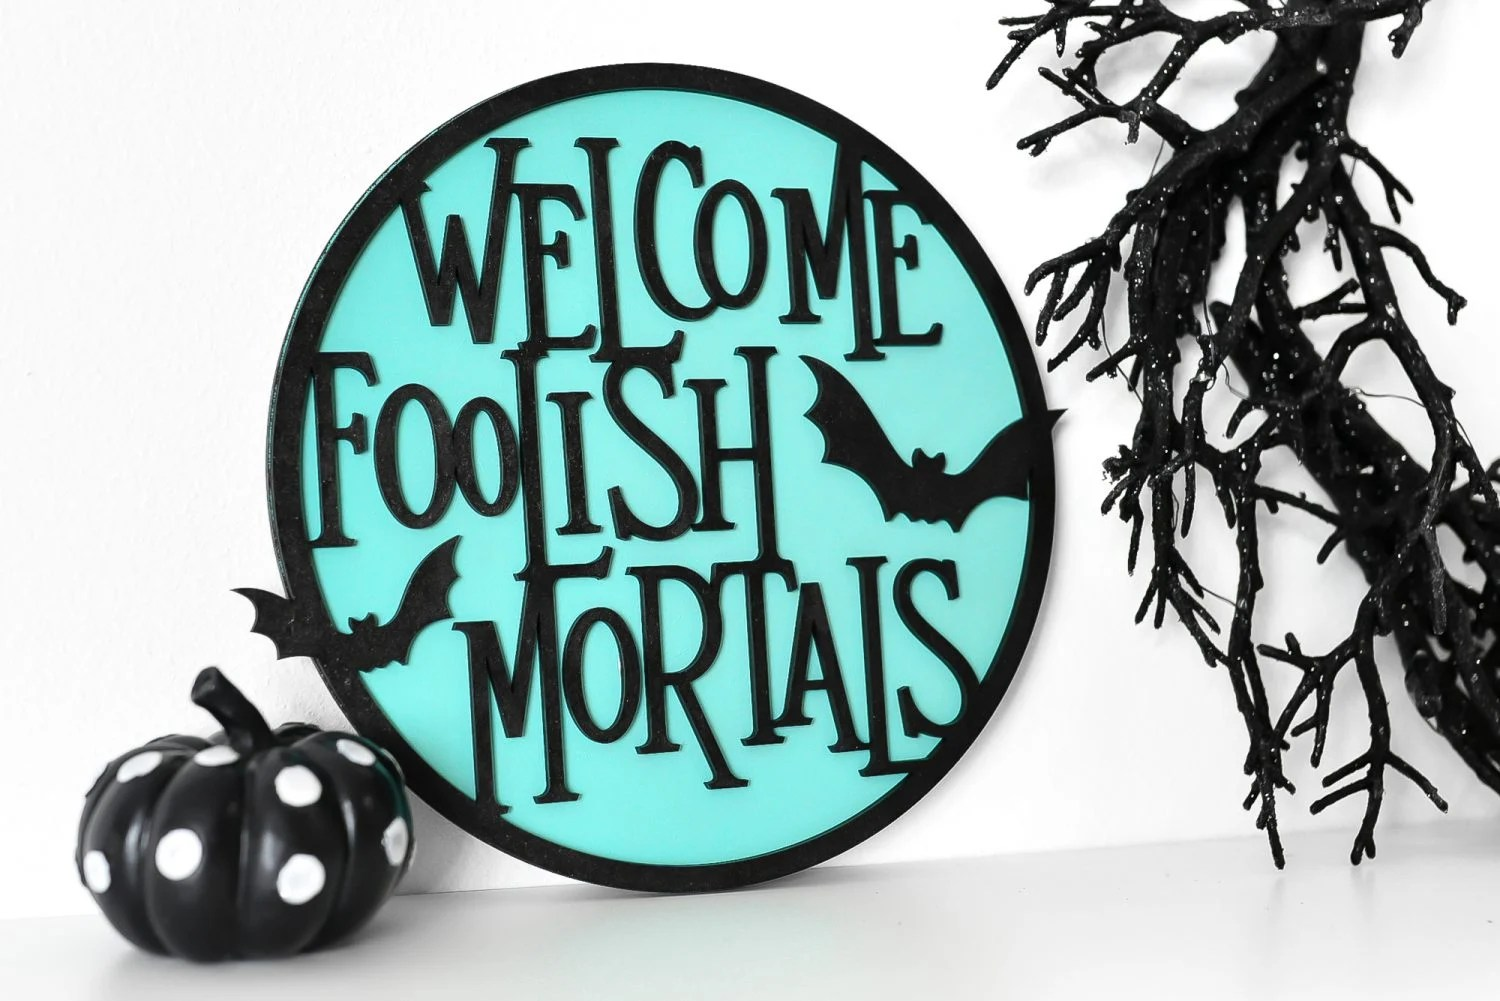 """Get ready for a ghoulish visit to the Haunted Mansion by crafting this """"Welcome Foolish Mortals"""" wood sign! This Halloween sign is made using the Glowforge, and can also be cut on a Cricut or other cutting machine."""